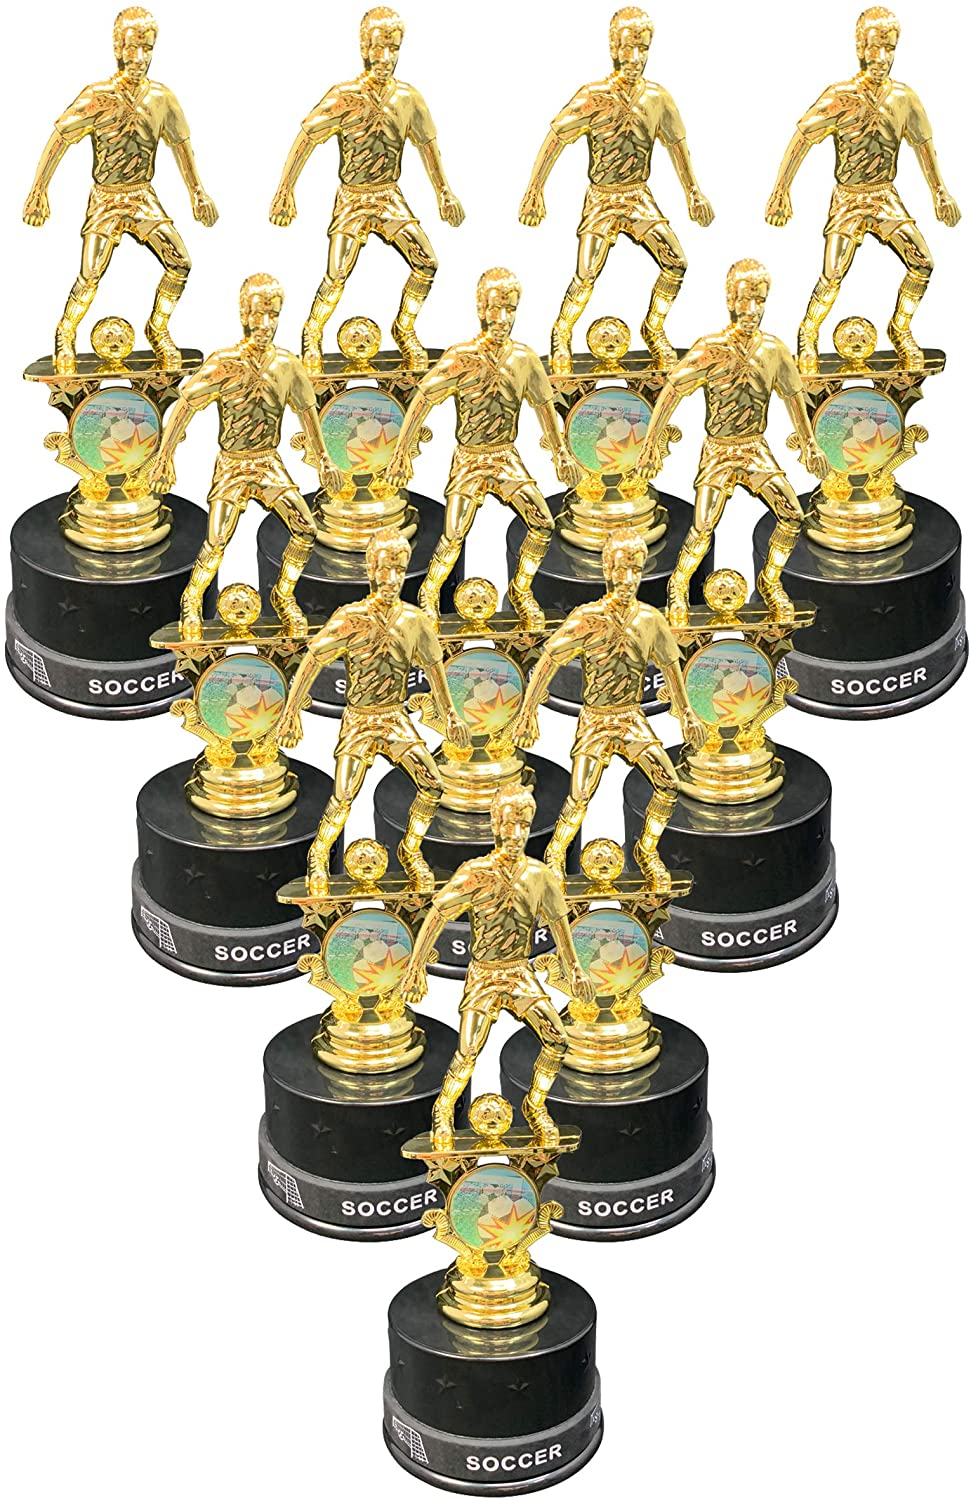 Express Medals Boys Soccer Trophy Award Kits That Include Silicone Soccer Wrist Band Awards (Pack of 10)